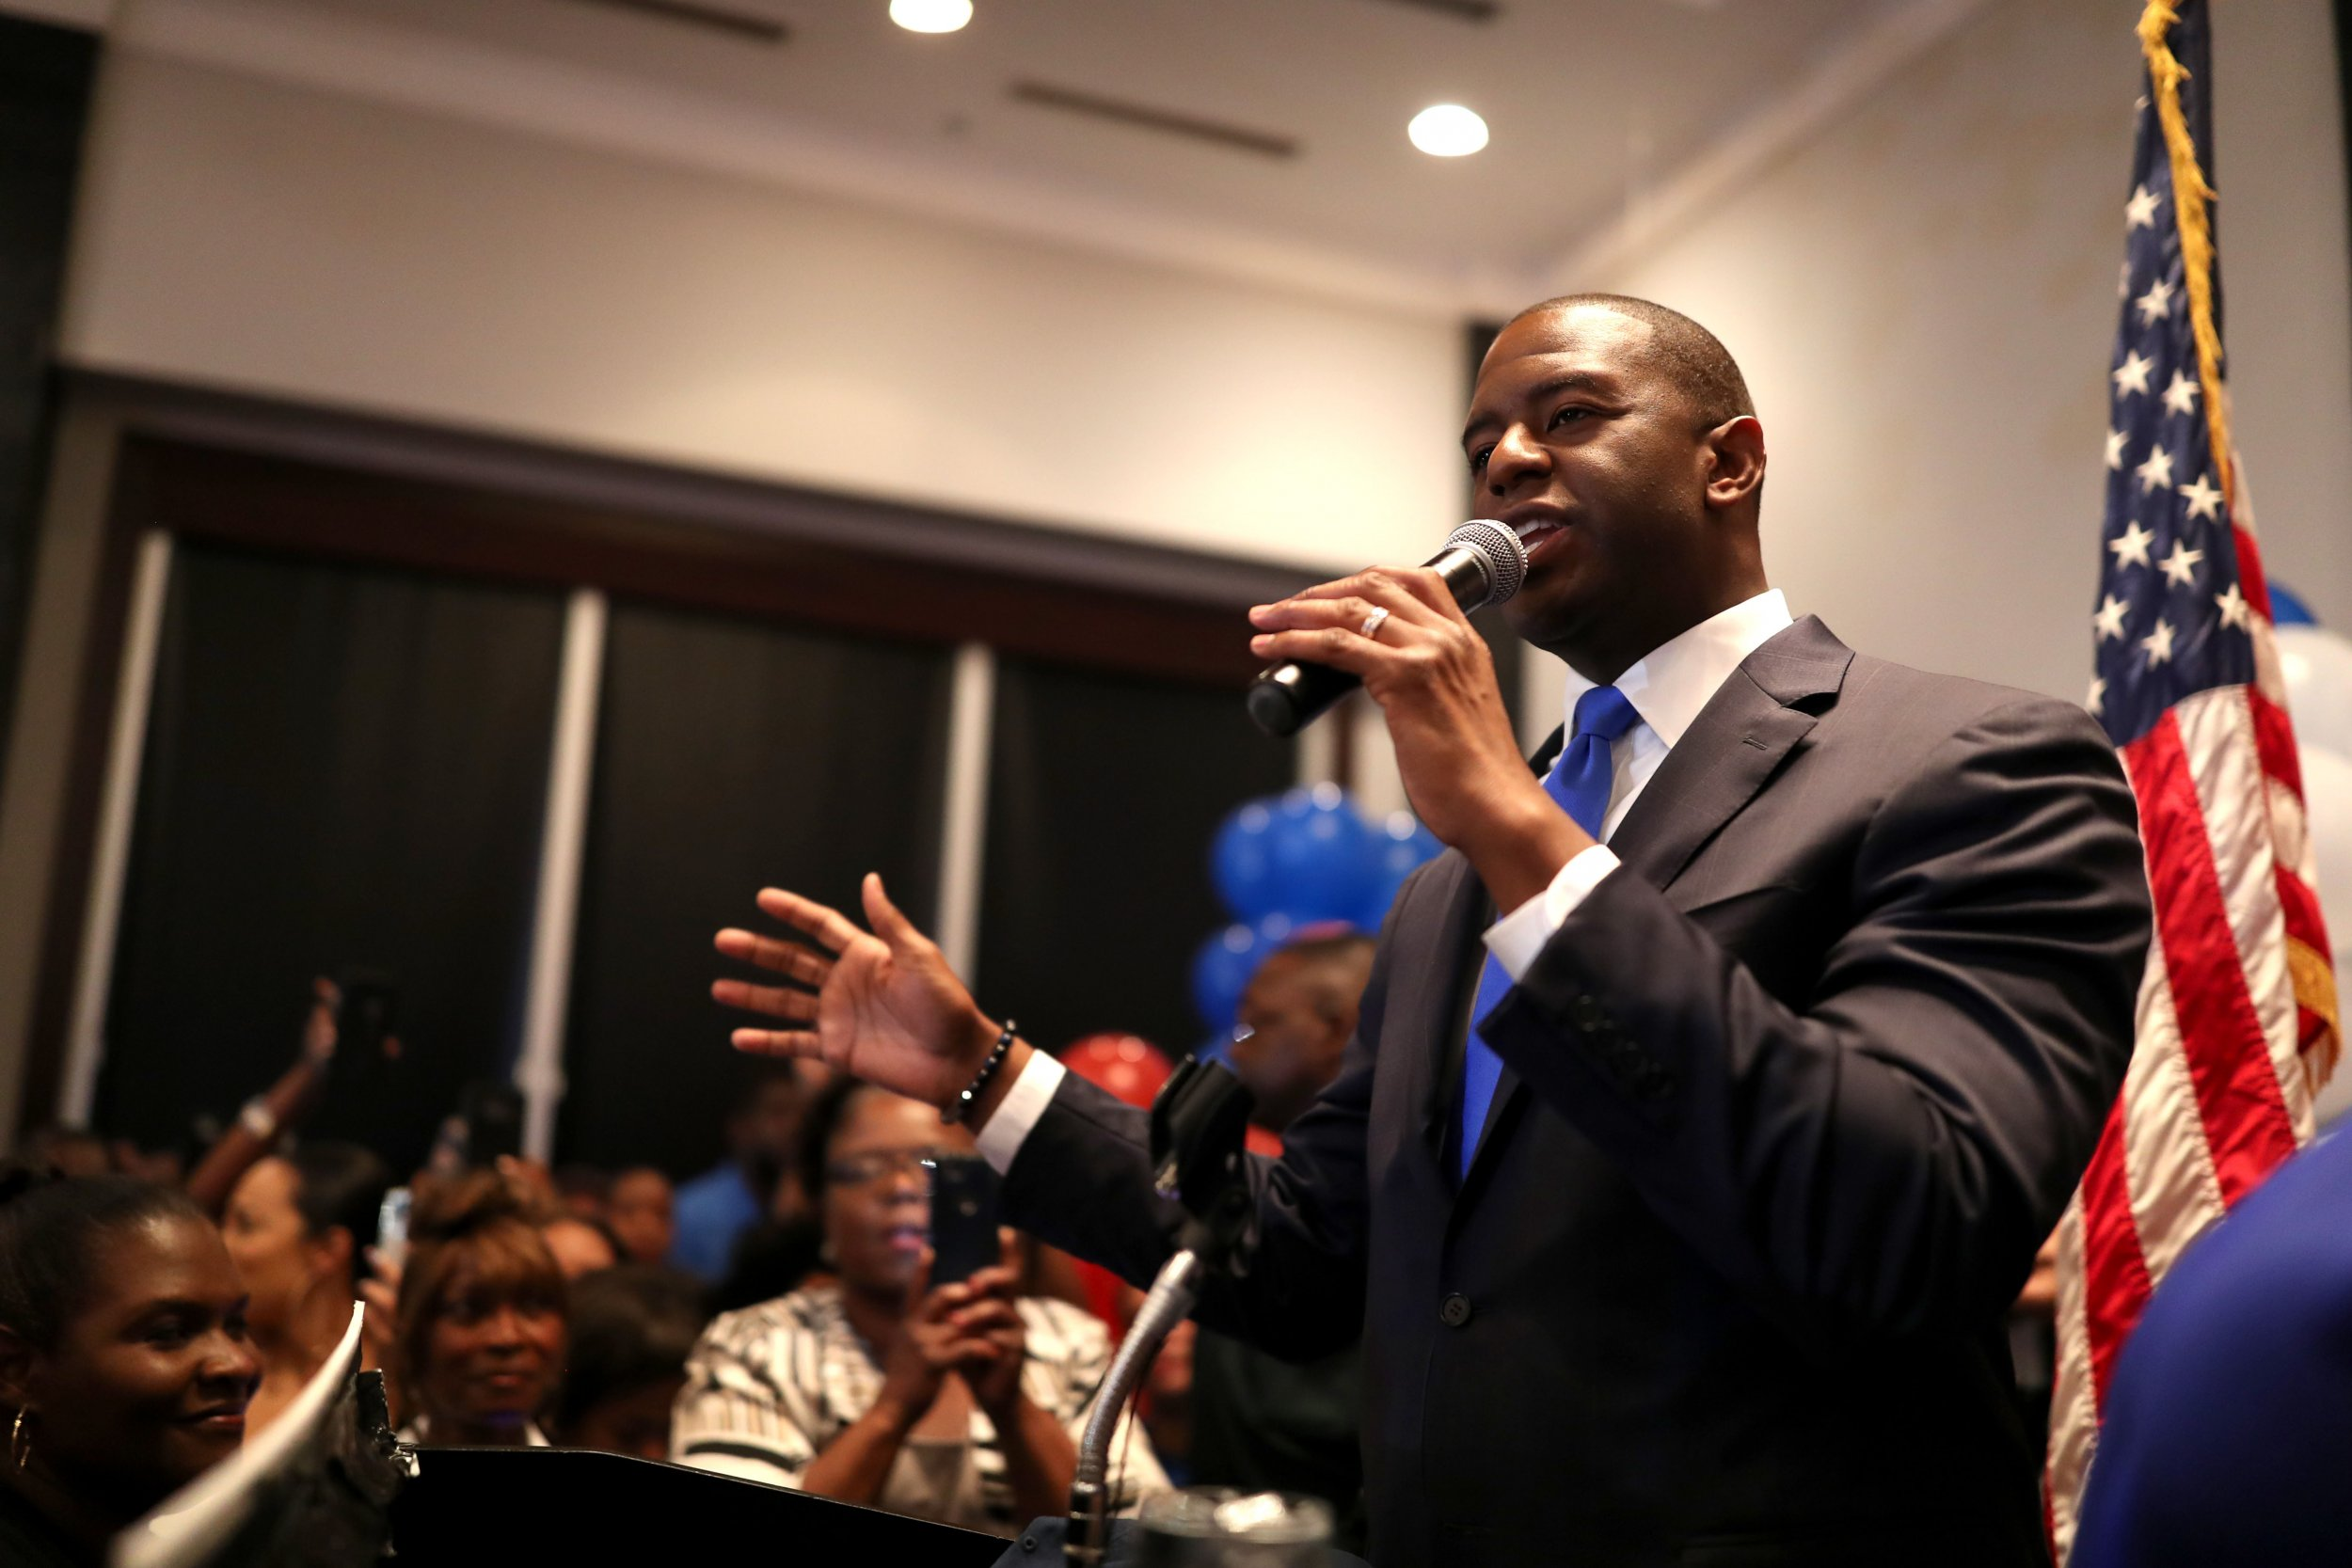 2018-08-29T023219Z_1624511646_NOCID_RTRMADP_3_NEWS-GUBERNATORIAL-ANDREW-GILLUM-WATCH-PARTY